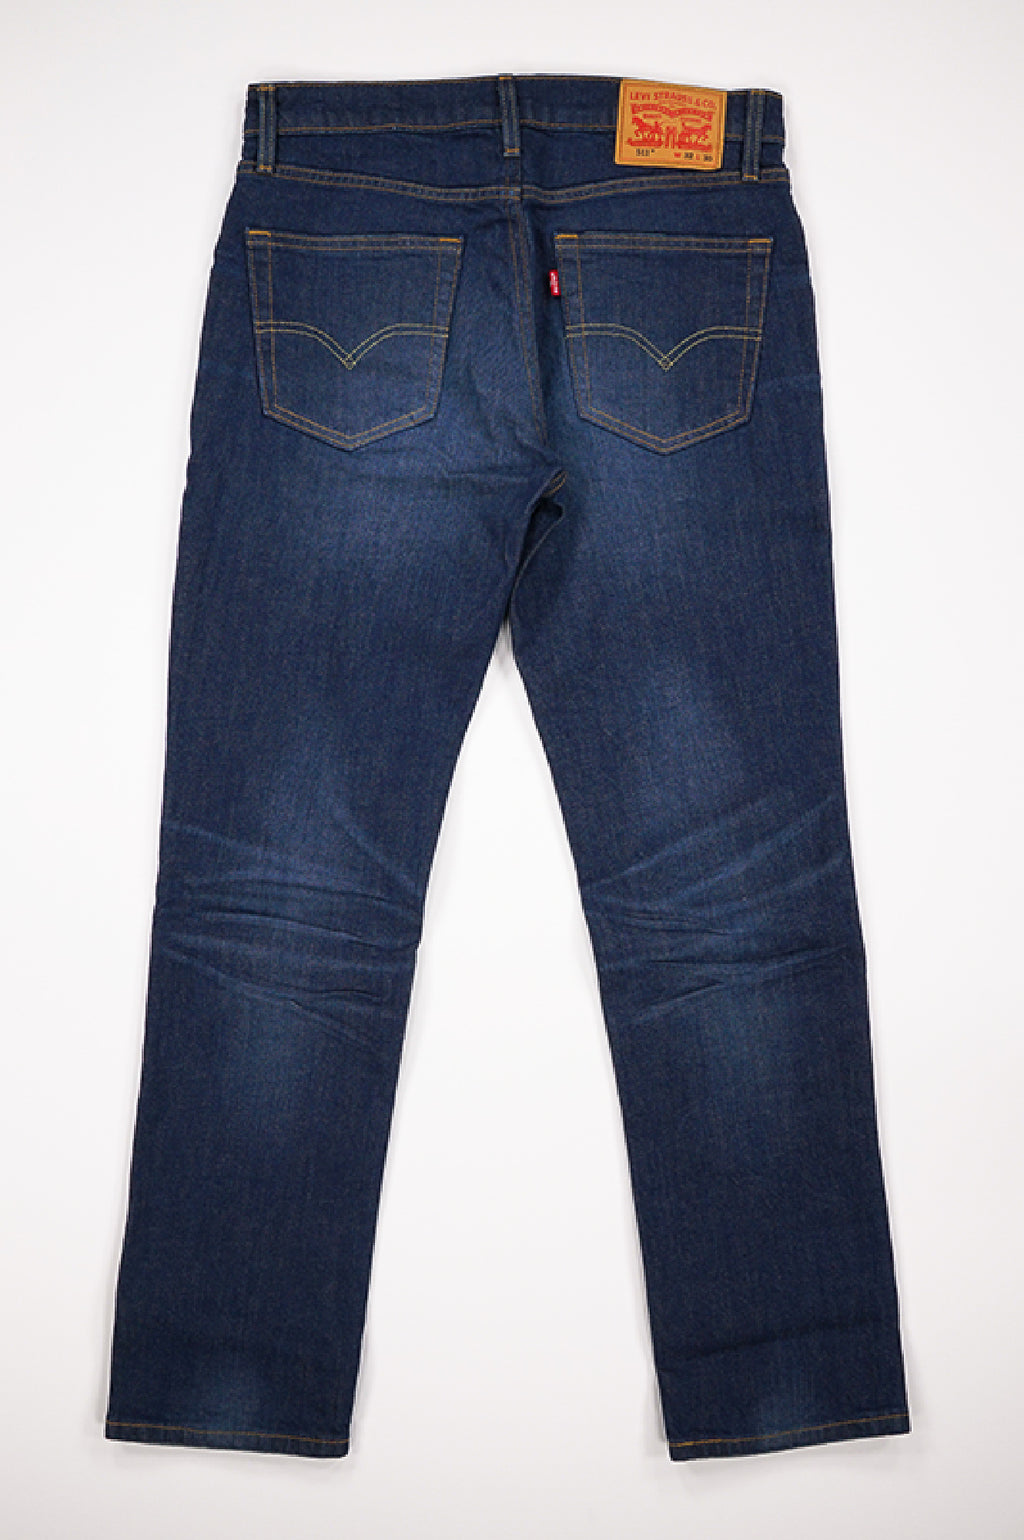 Levi'S Men Jn-511 Denim Pants